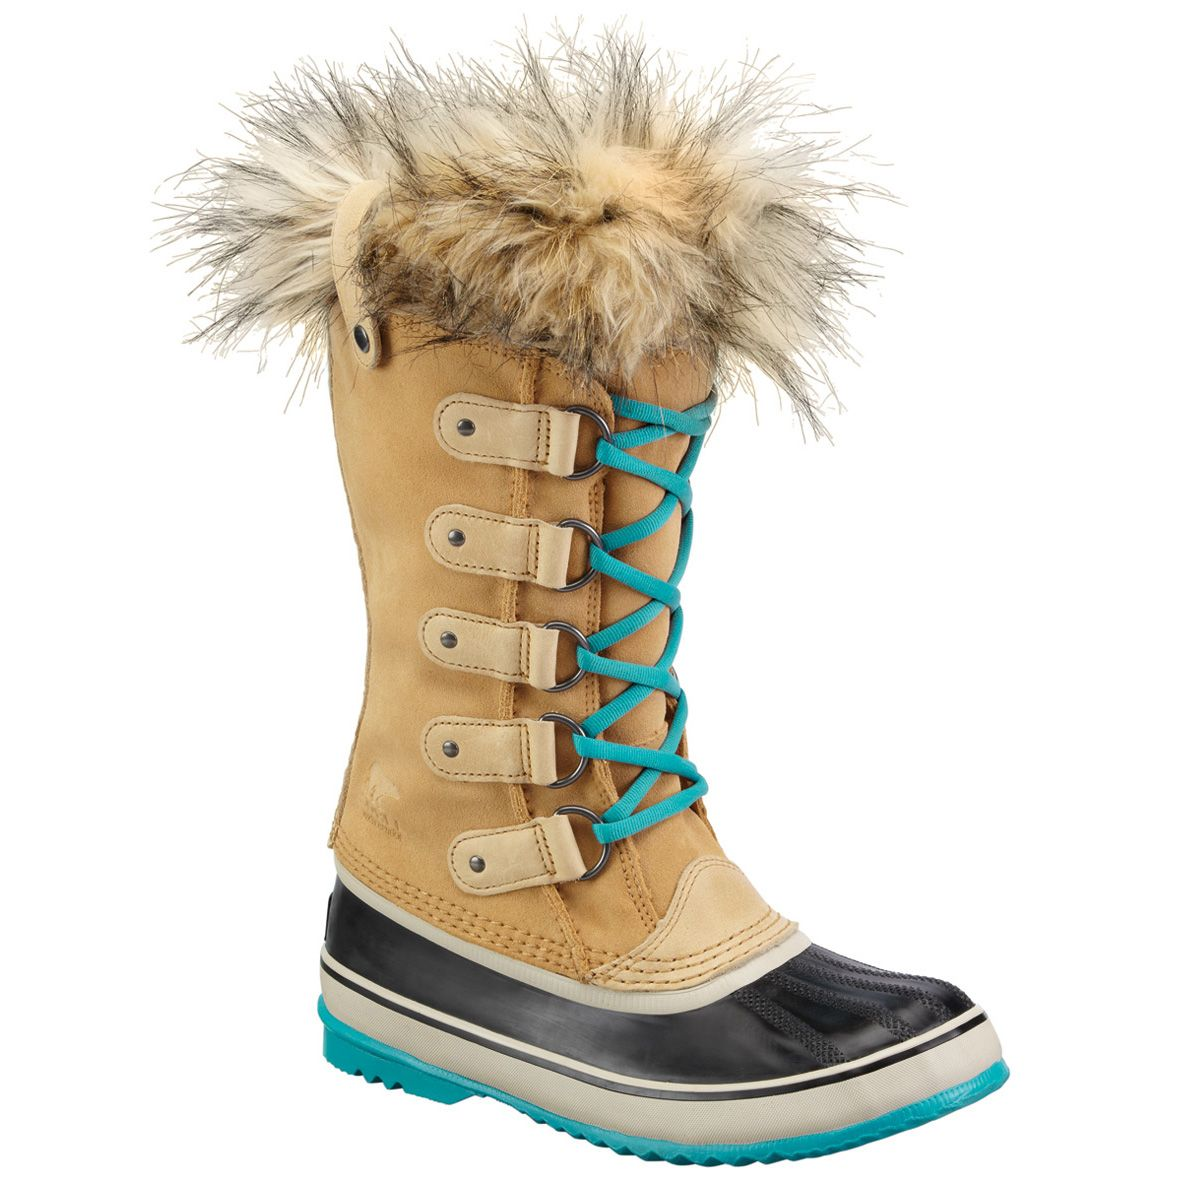 Merrell Nikita Waterproof Winter Boots - Women's | porter ...